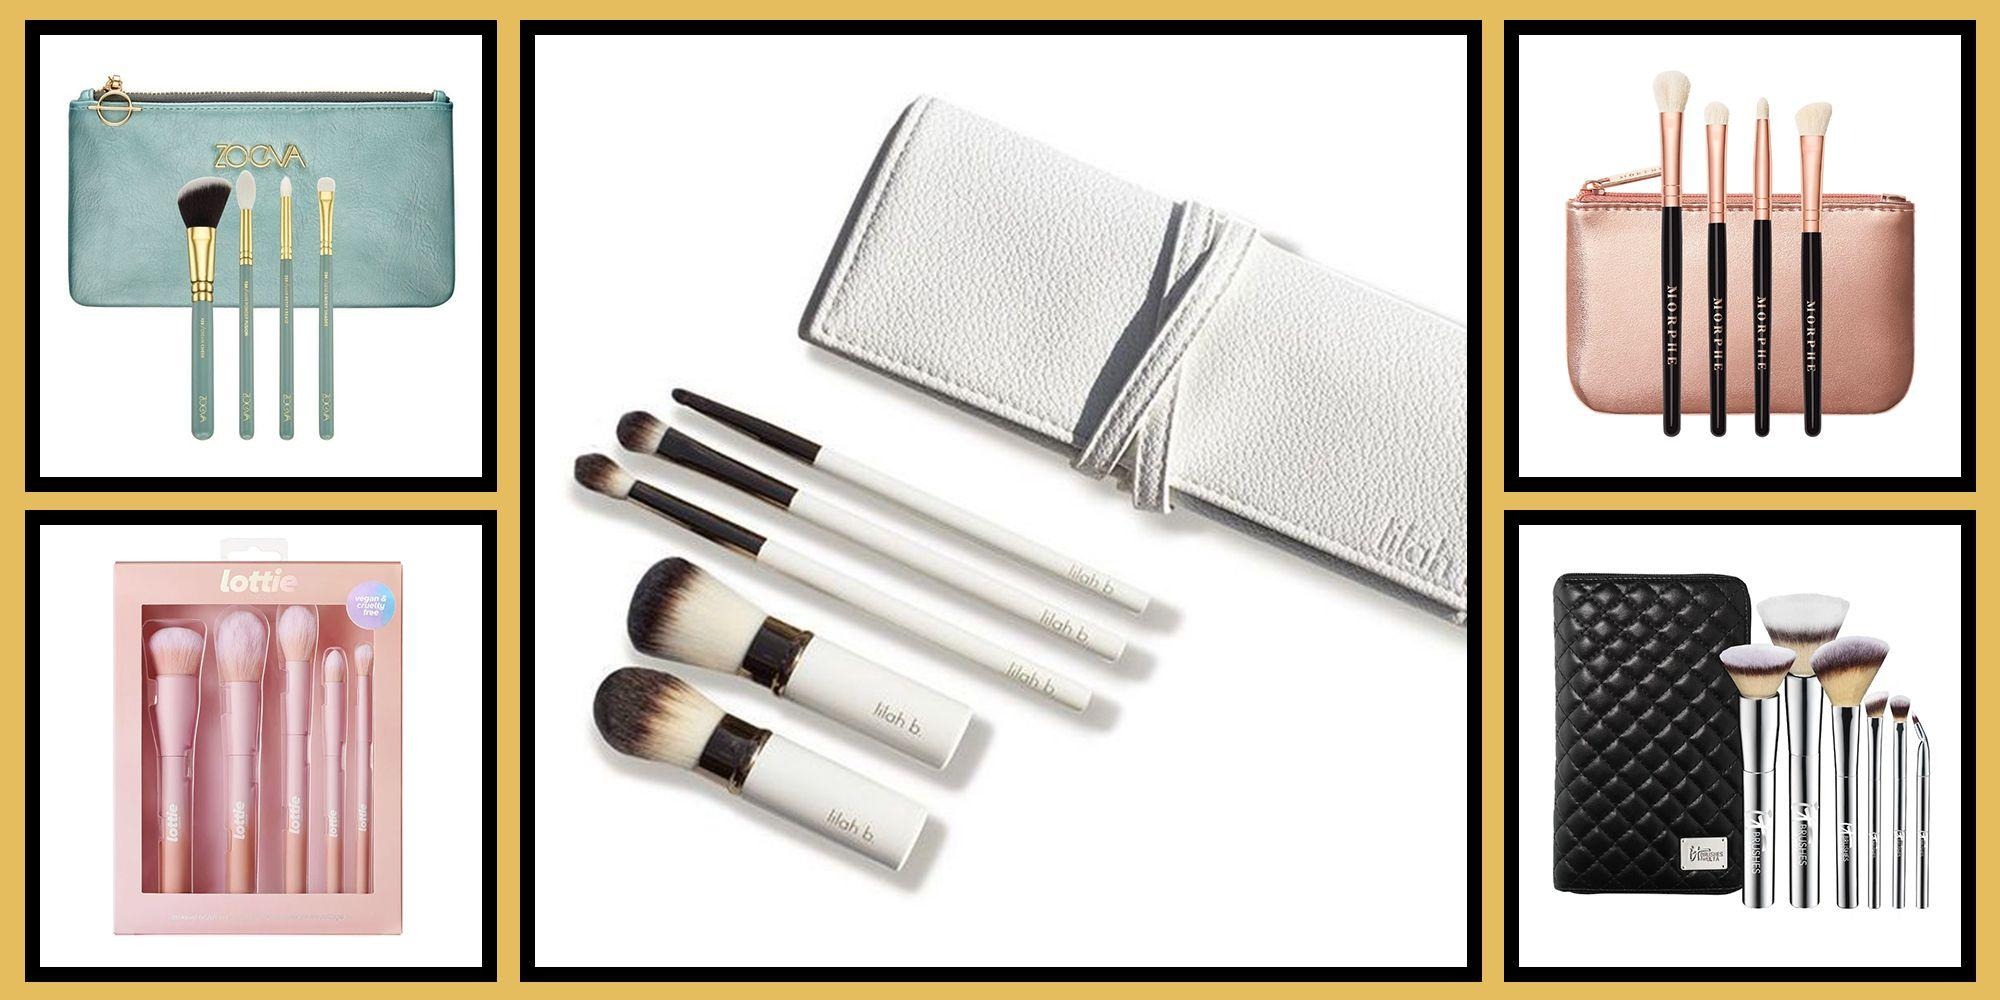 The Makeup Brush Sets The Beauty Junkie In Your Life Deserves